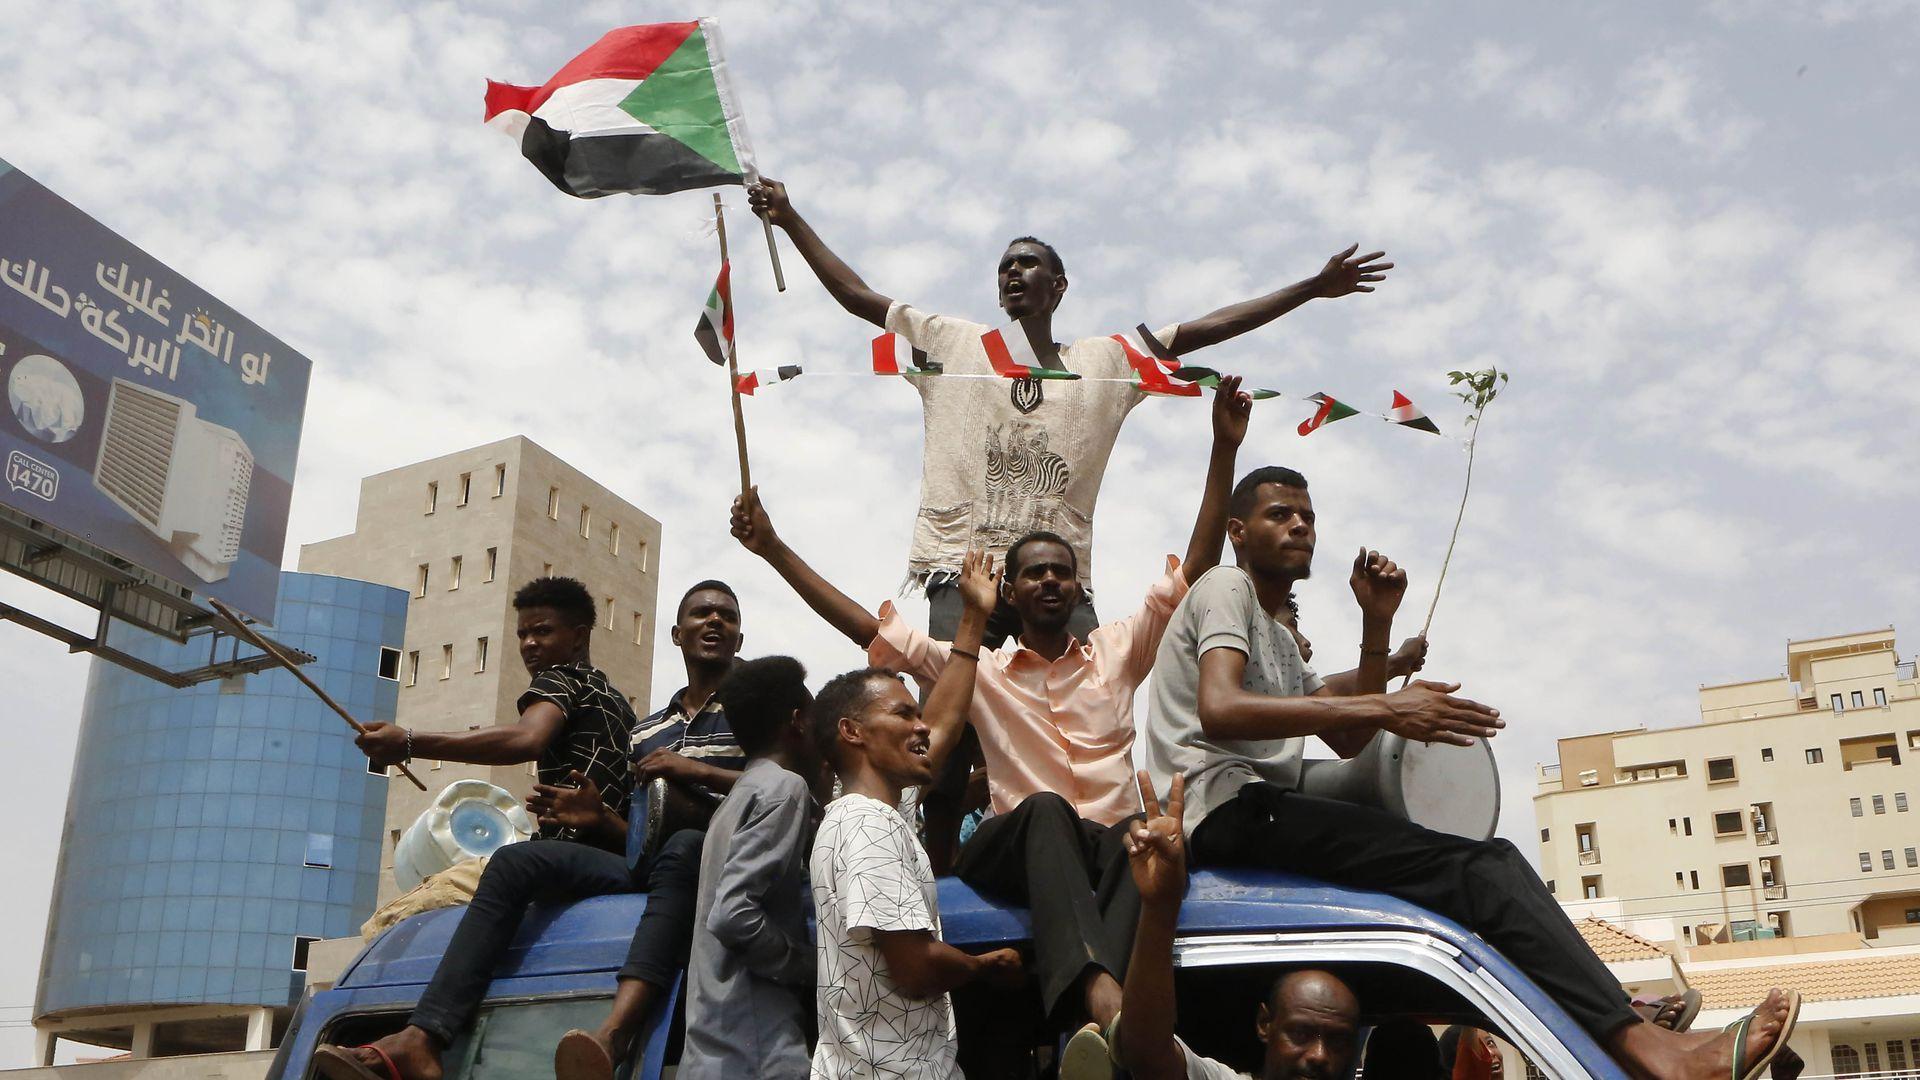 Sudanese people celebrate after civilian and military leaders reached an agreement